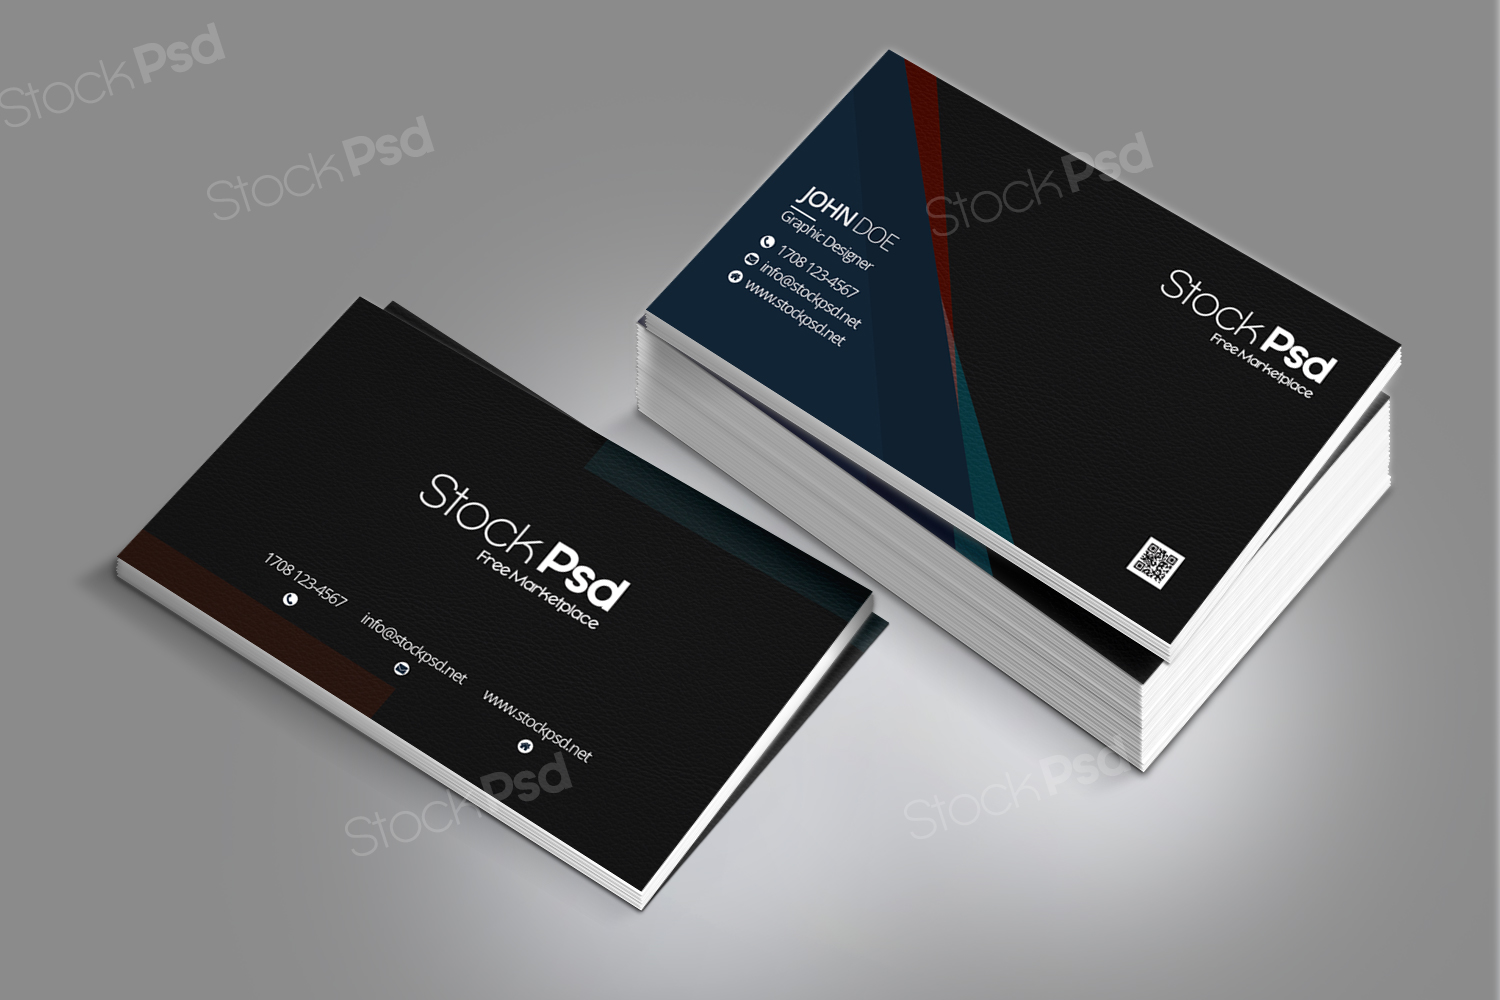 Stockpsd freebie templates business card free psd template business card free psd template cheaphphosting